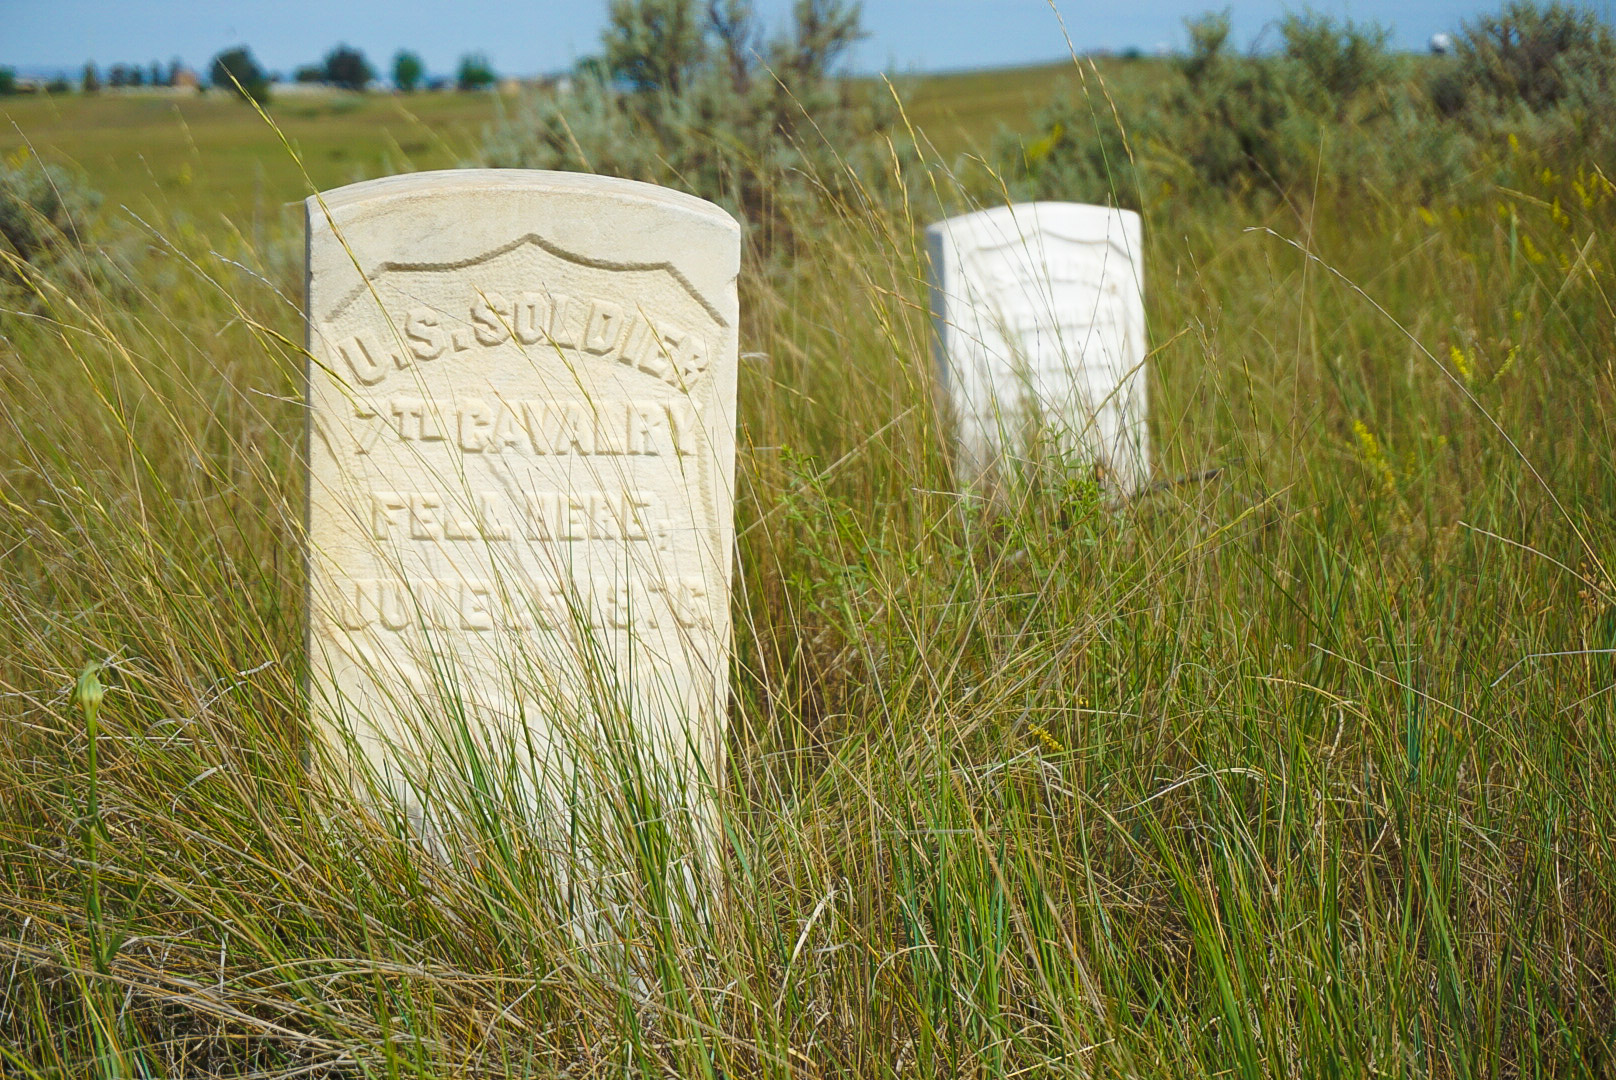 Markers showing where soldiers lost their lives on the battlefield